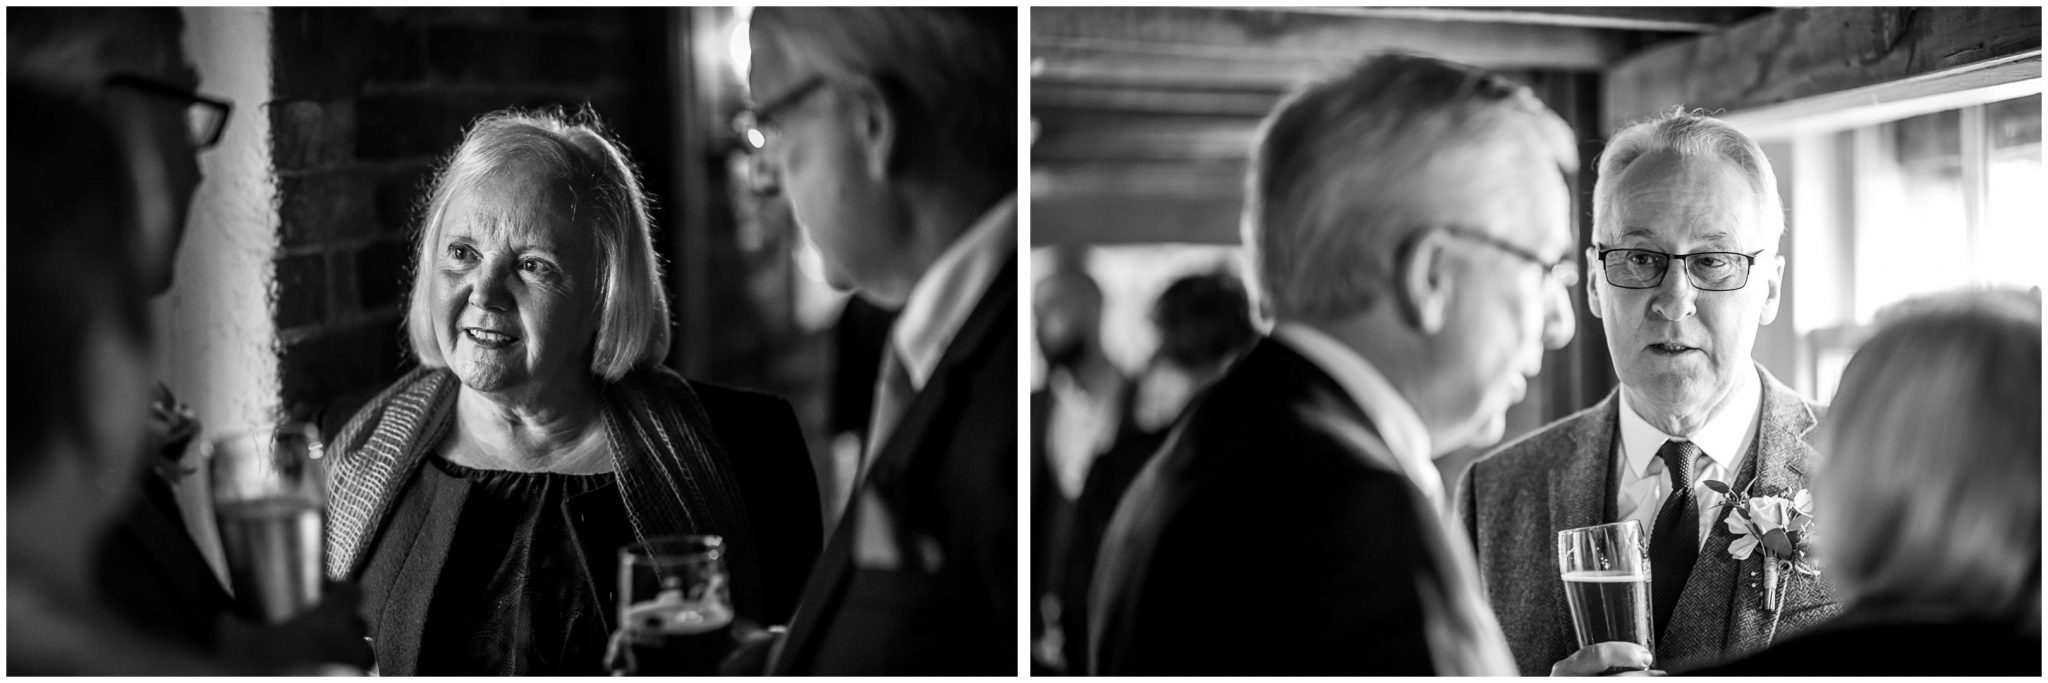 Black and white candid photos of wedding guests during reception